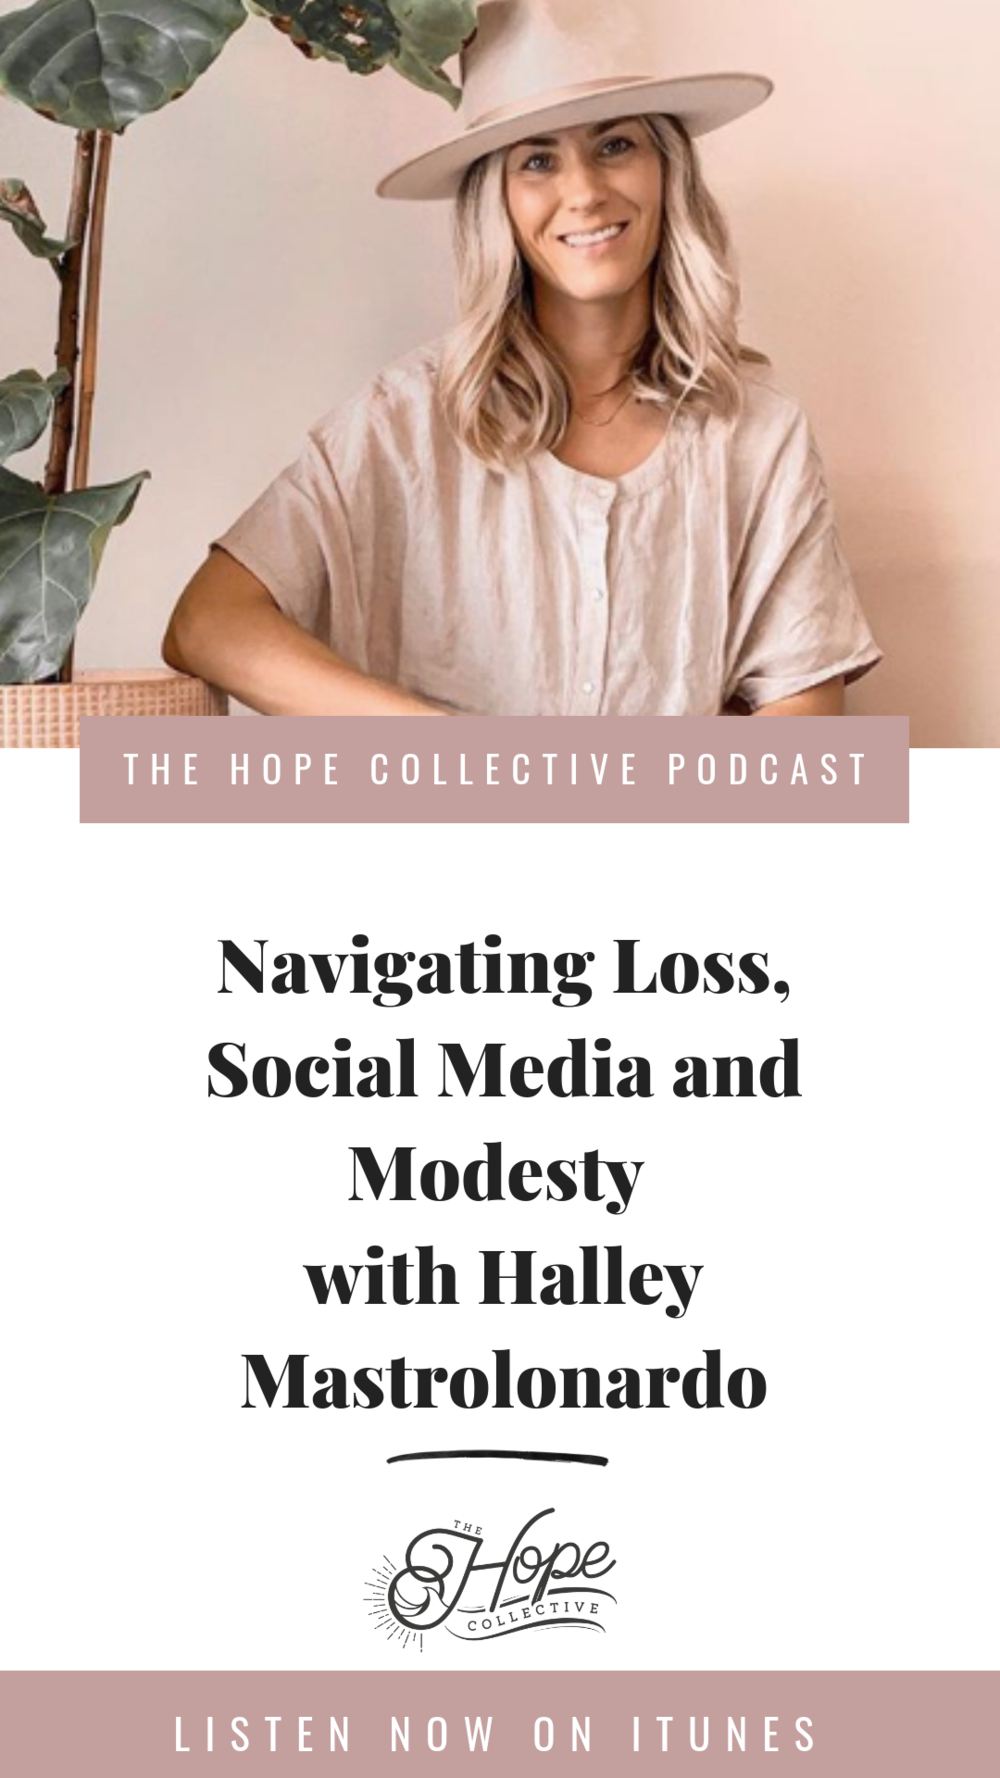 Halley Mastrolonardo - The Hope Collective Podcast